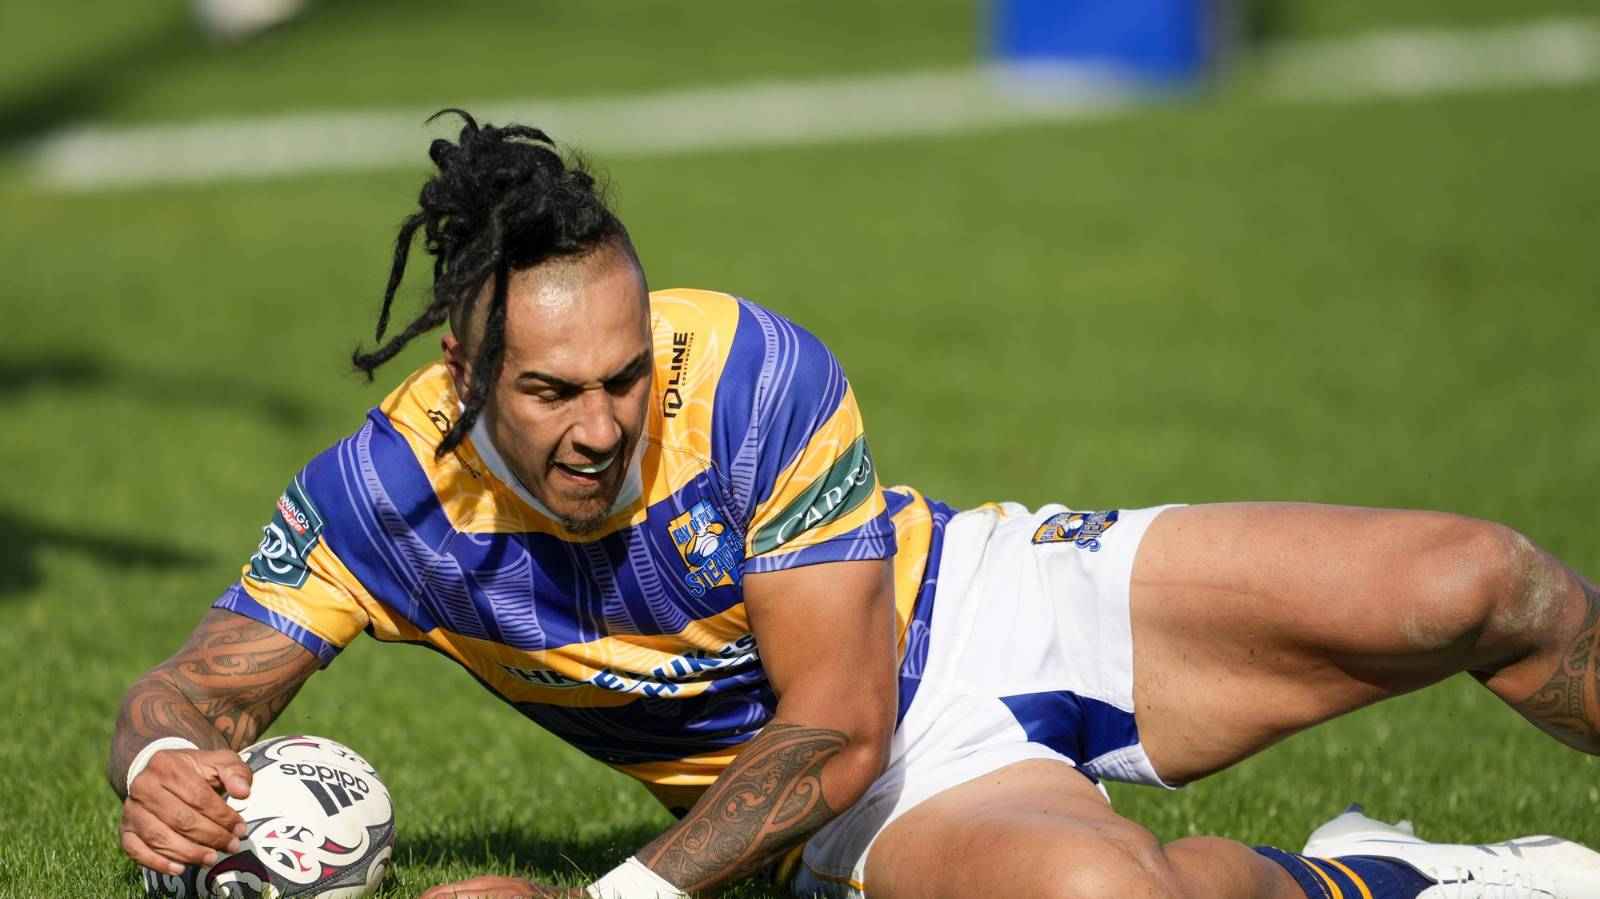 'I'm in absolute pieces': Sean Wainui's wife pays heartfelt tribute to her late husband